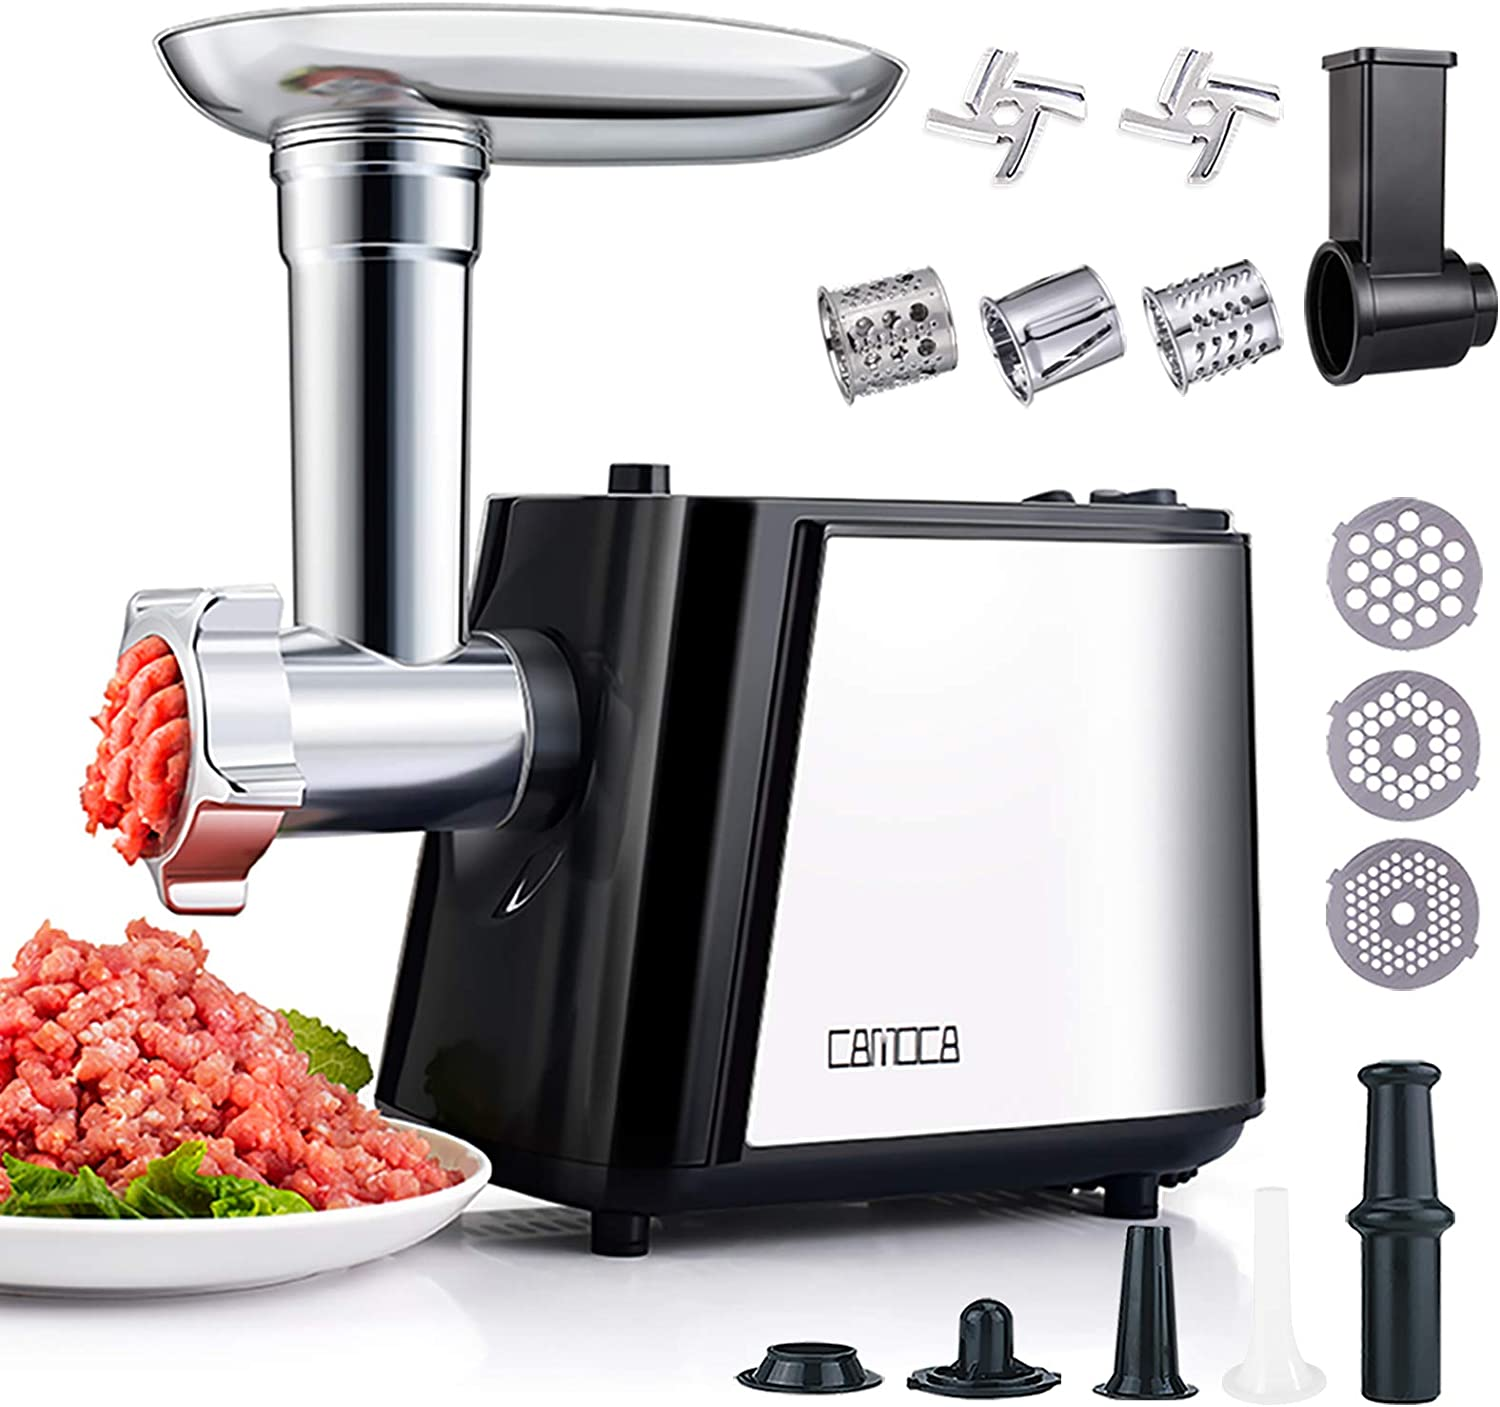 CAMOCA Meat Grinders for Home Use, Stainless Steel Meat Grinder Electric, [1600W Max], Food Grinder Sausage Maker with Slicer Shredder Attachment, 2 Blade and 3 Grinding Plates, Sausage & Kubbe kit.